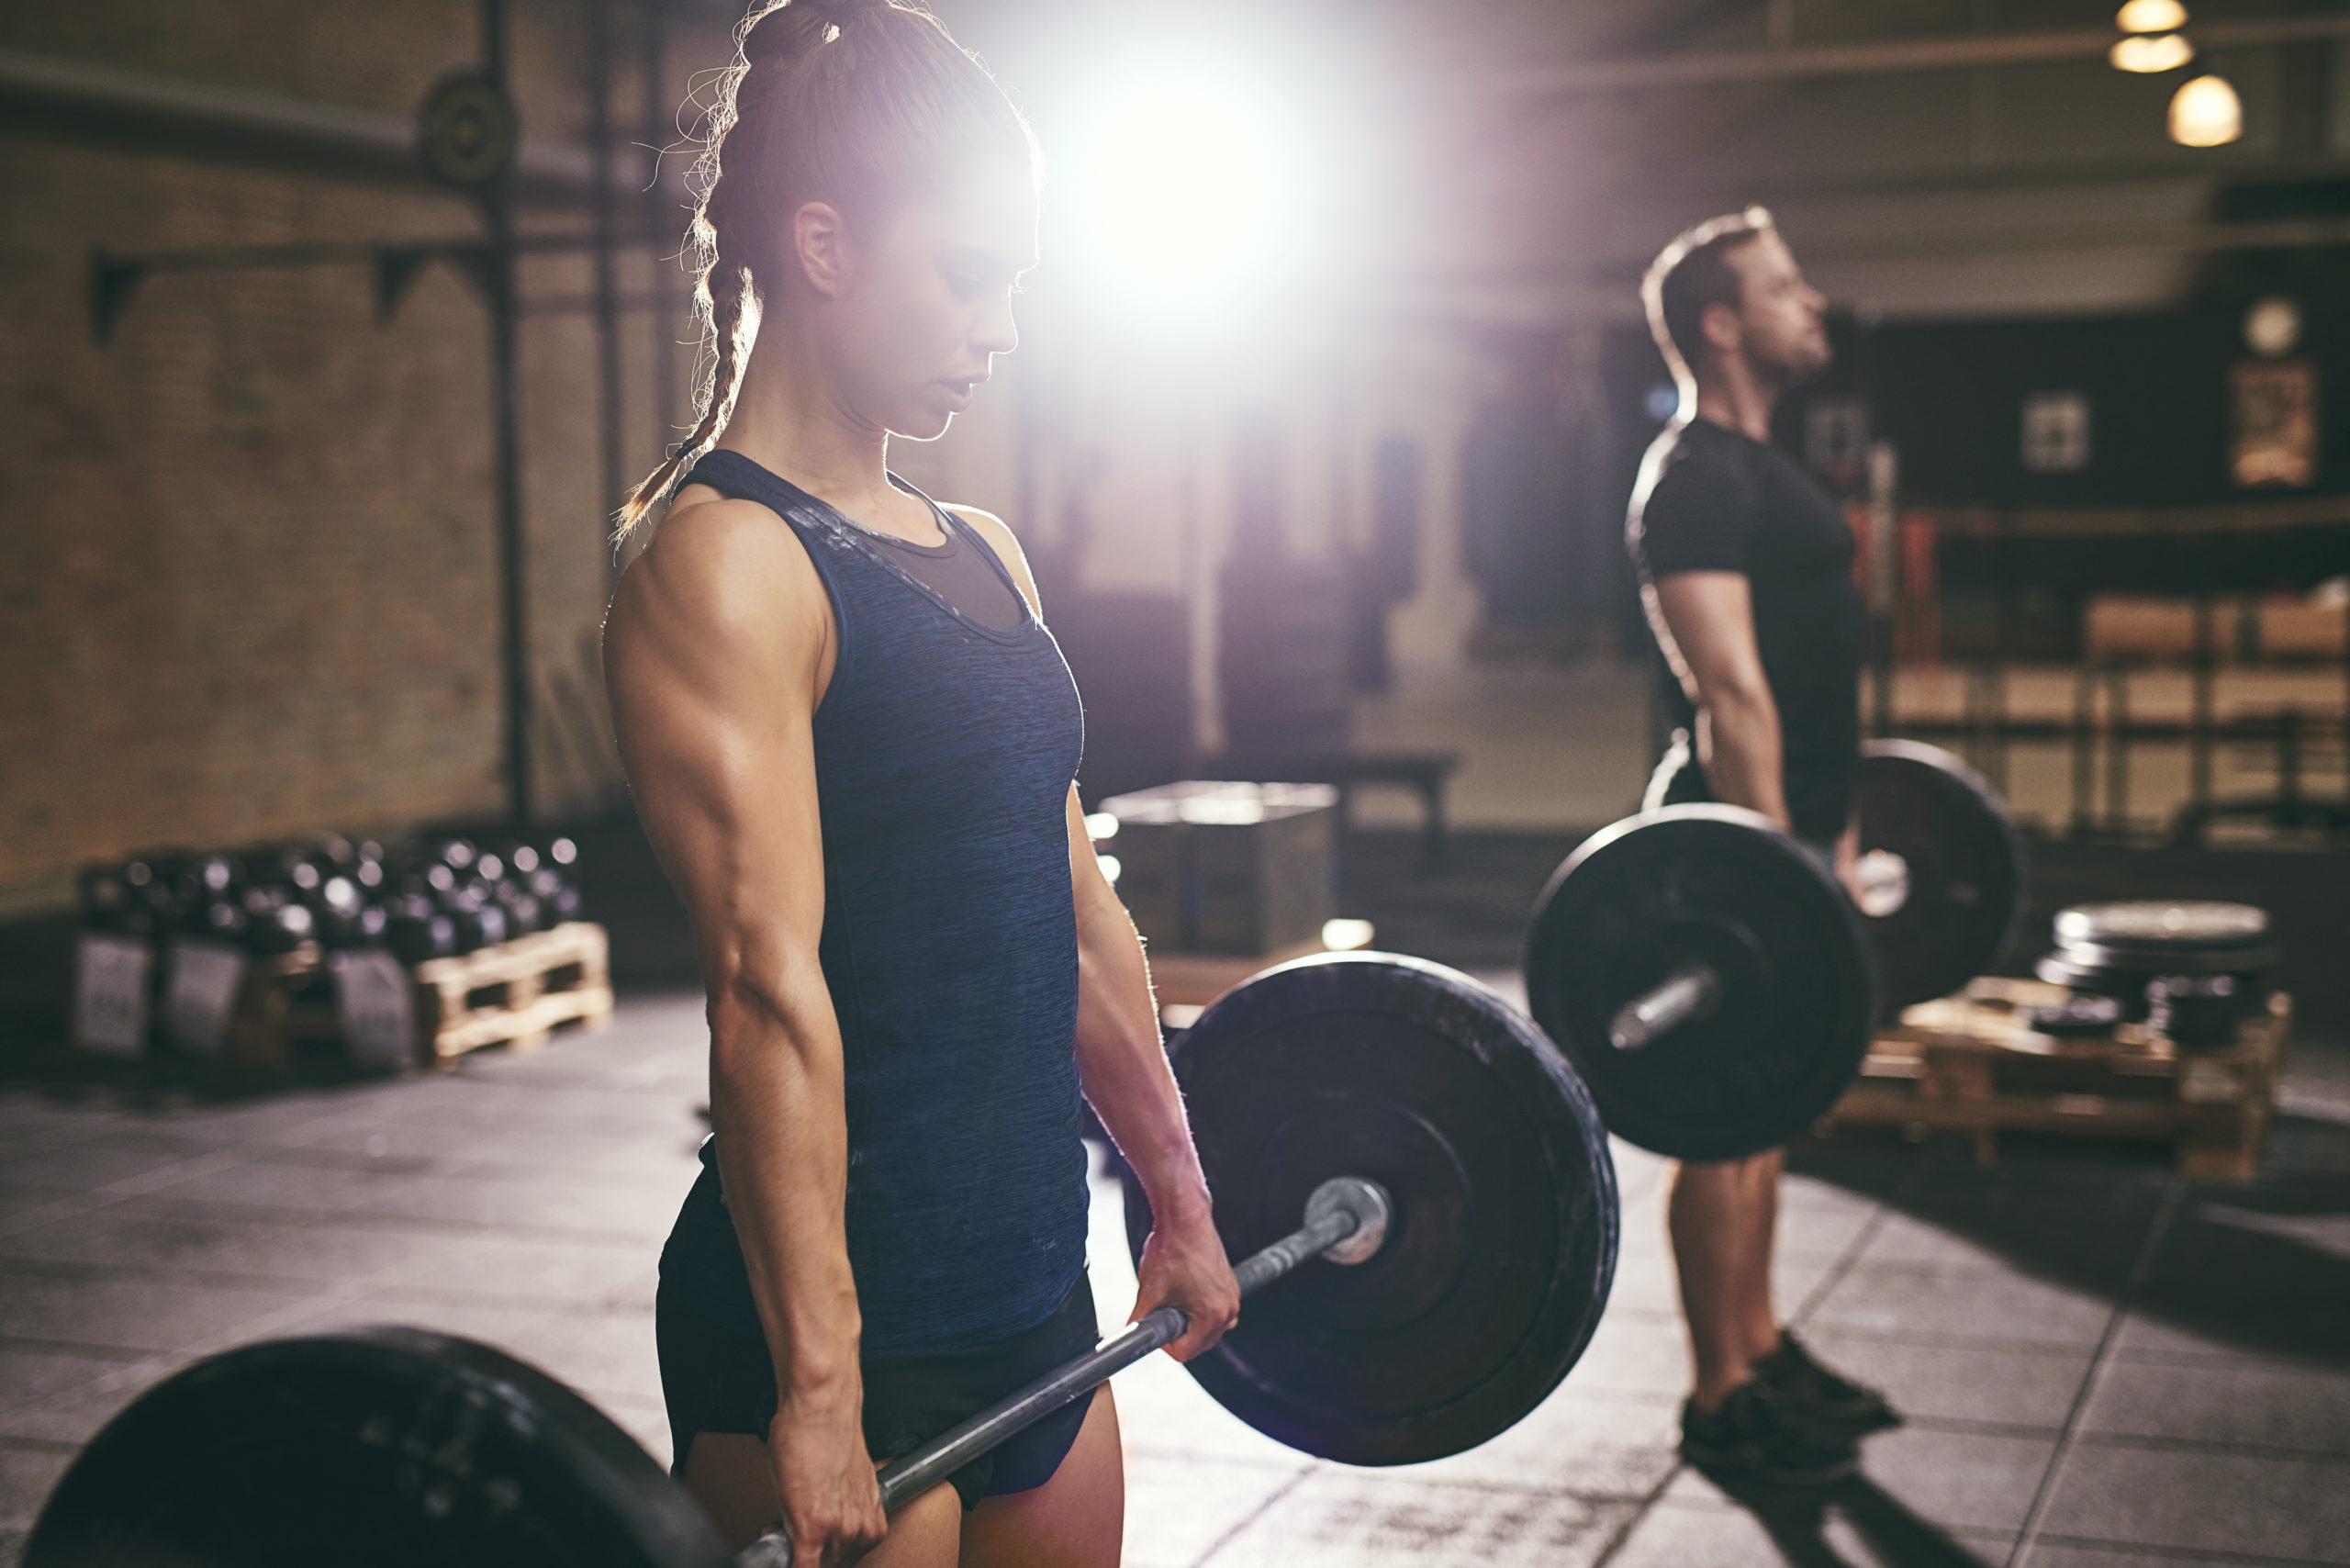 A woman showed she can deadlift more than her boyfriend, and his bruised toxic masculinity lashed out in the worst way. (Stock photograph via Elements Envato)